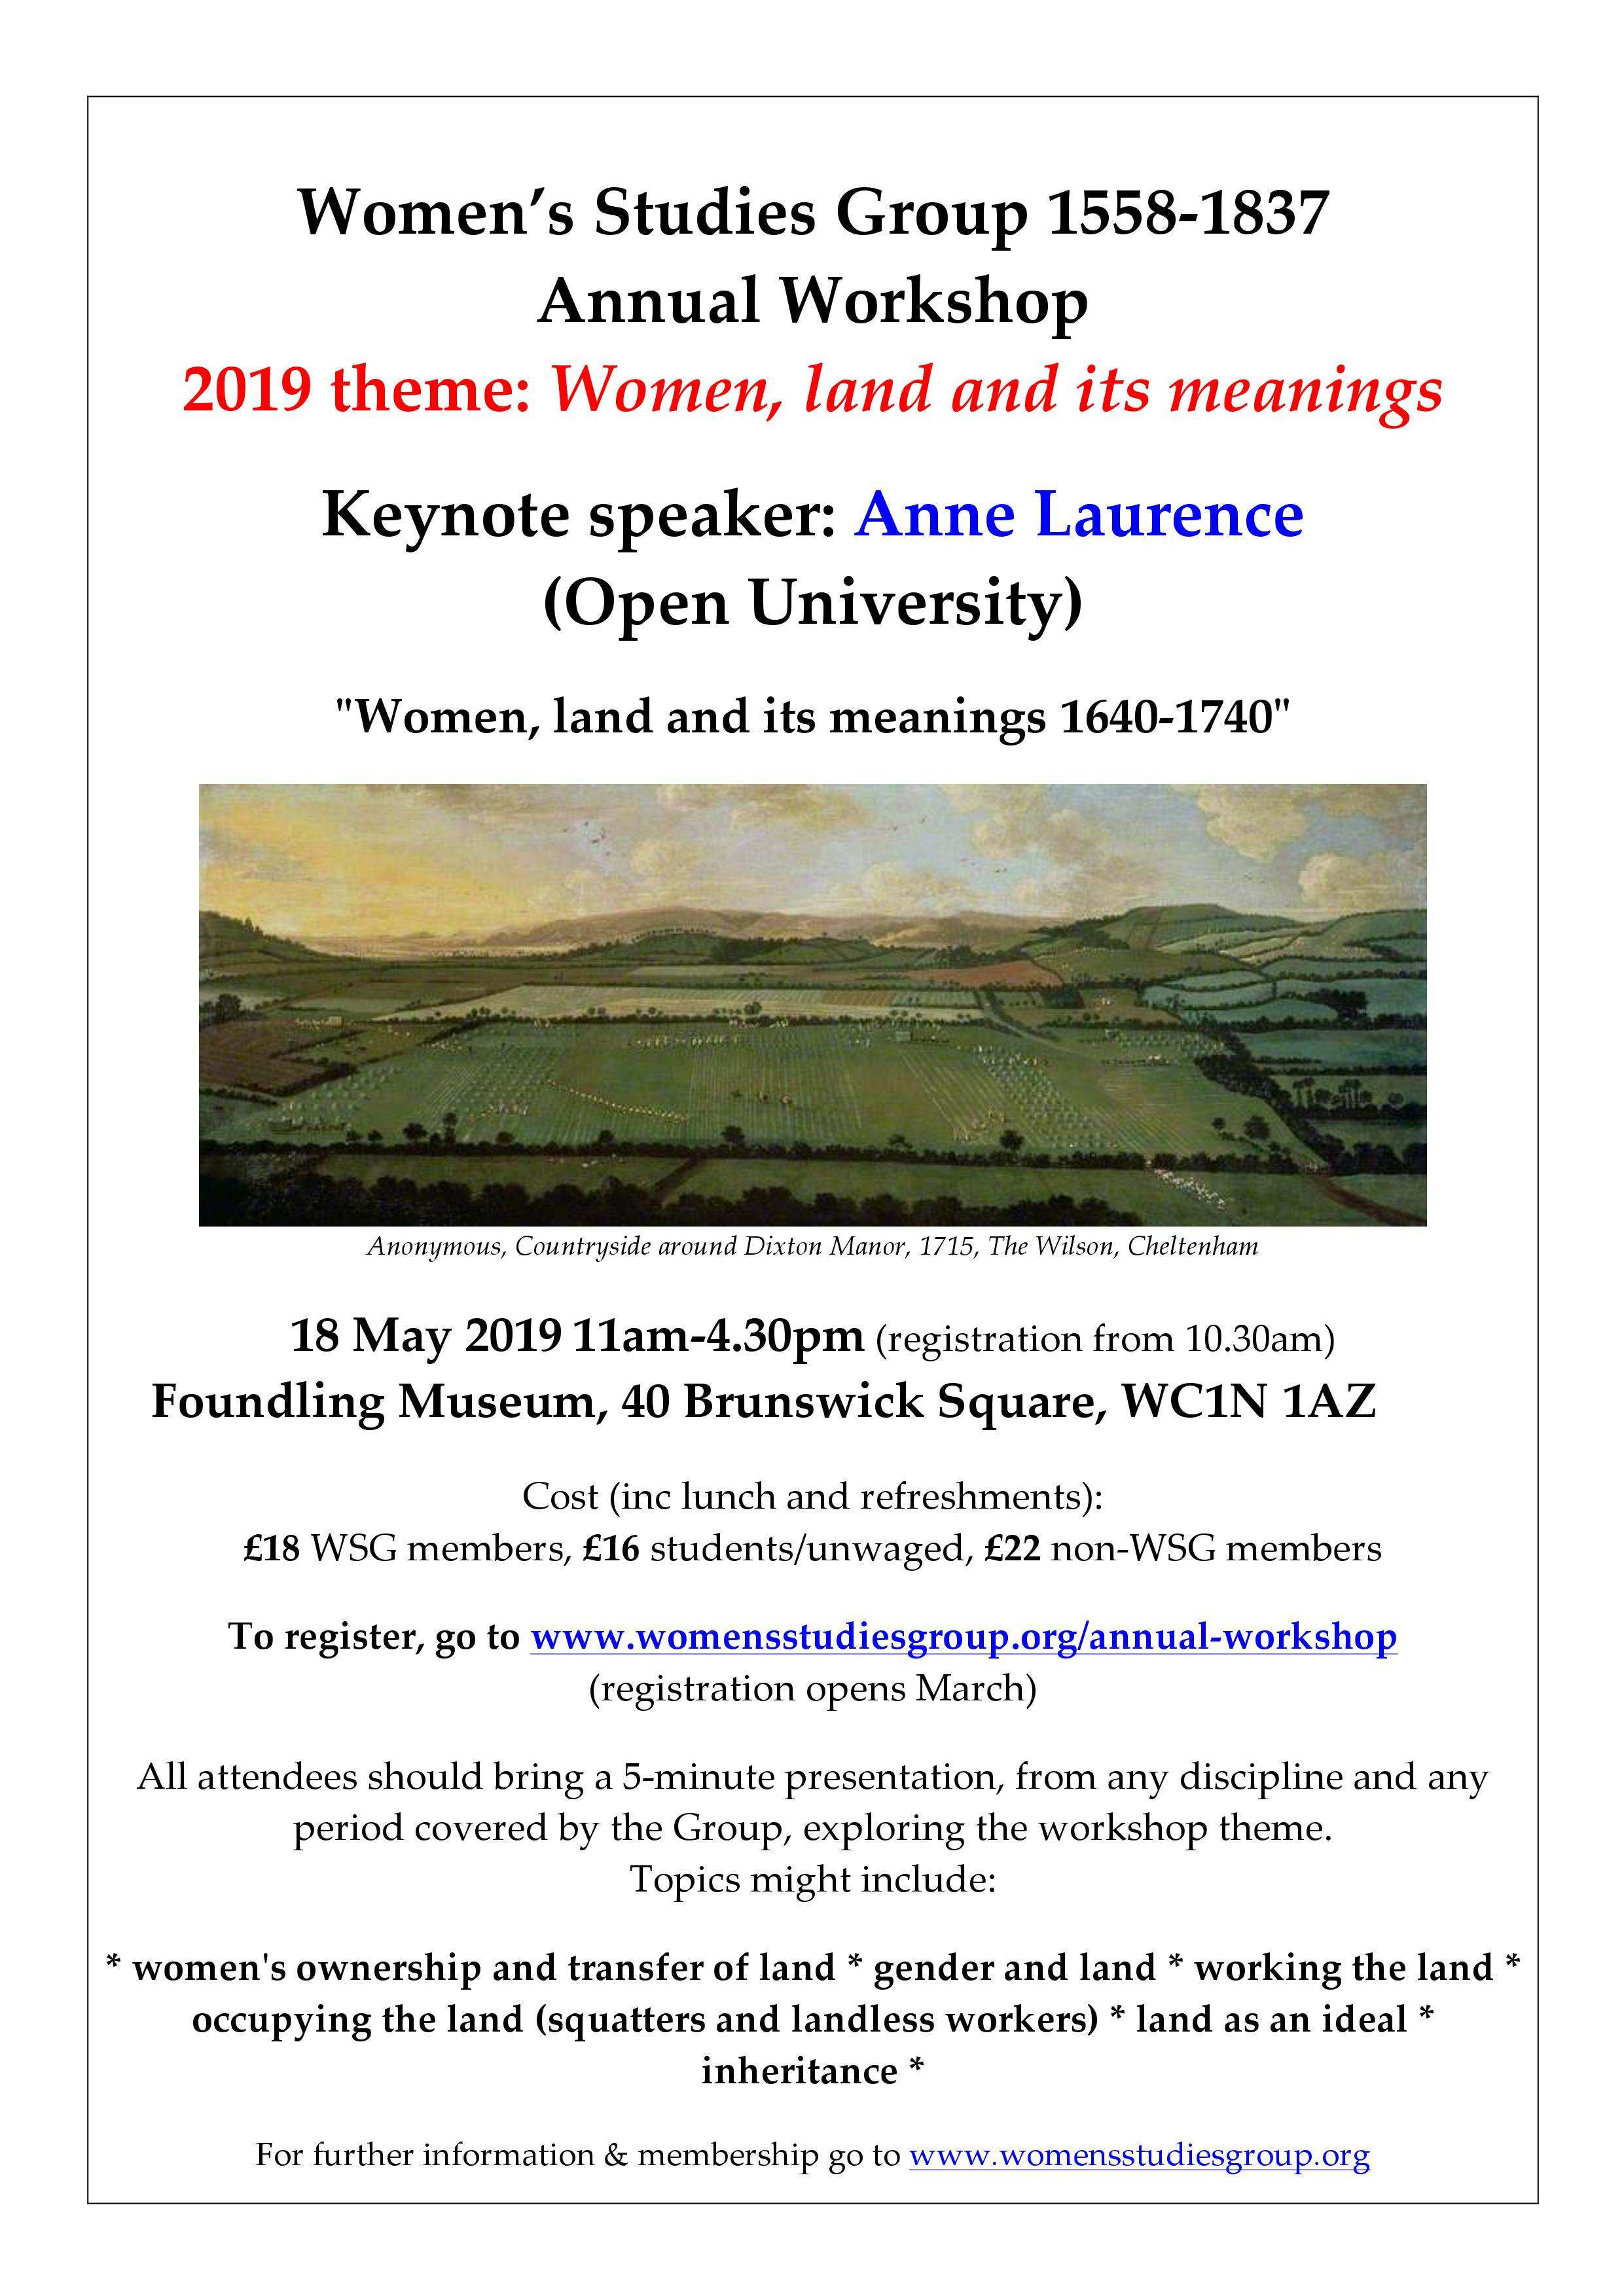 Women's Studies Group Annual Workshop 2019 – Women, Land and its